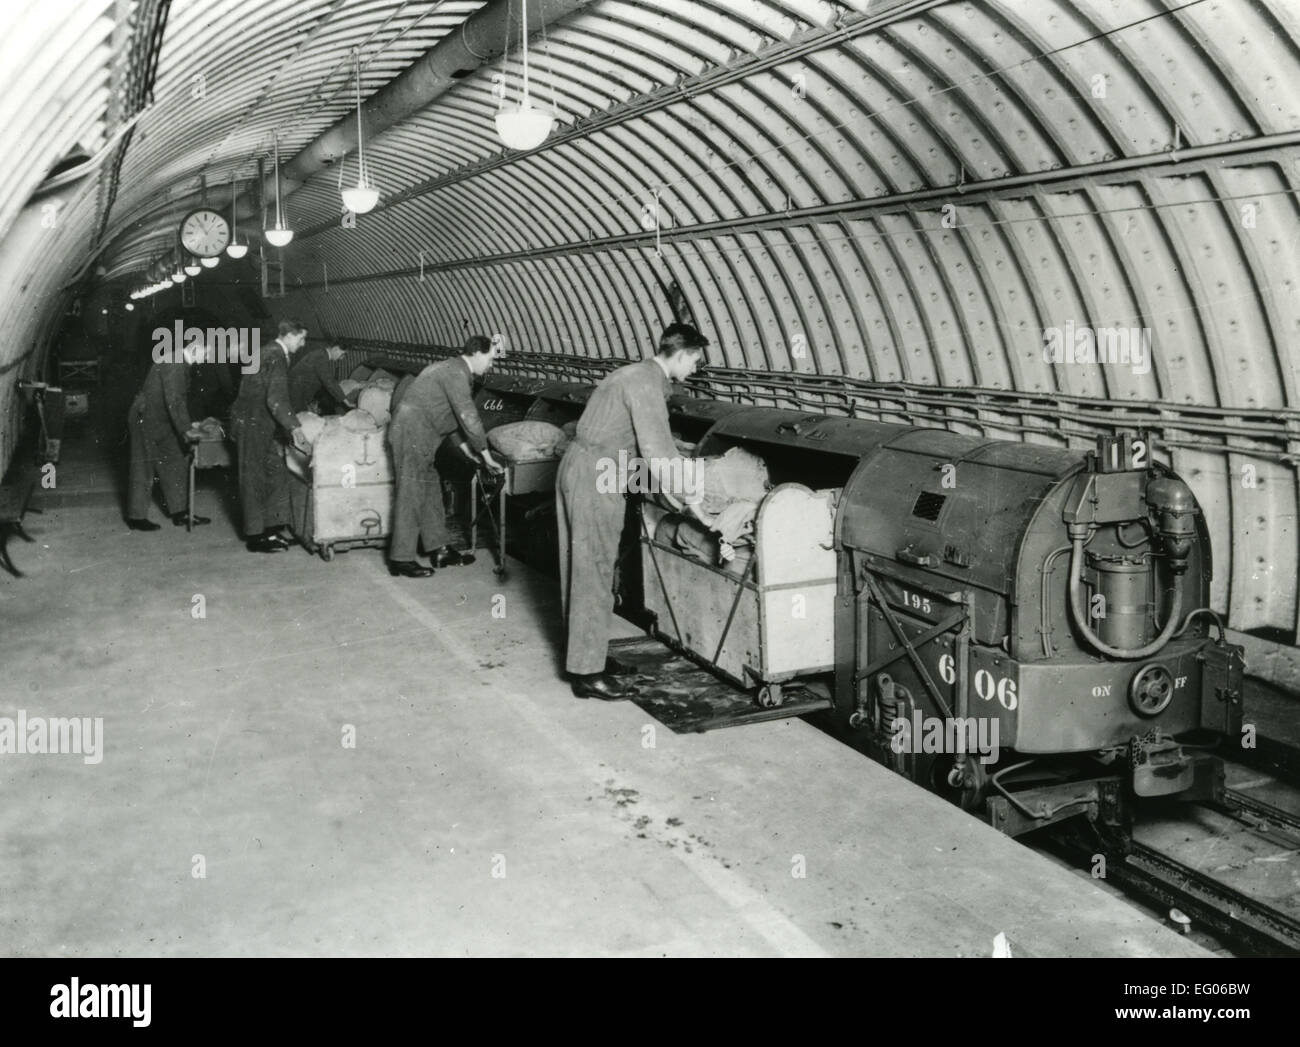 Photograph of the Post Office Railway . Several men are loading post onto train underground. It ran for 22 hours - Stock Image